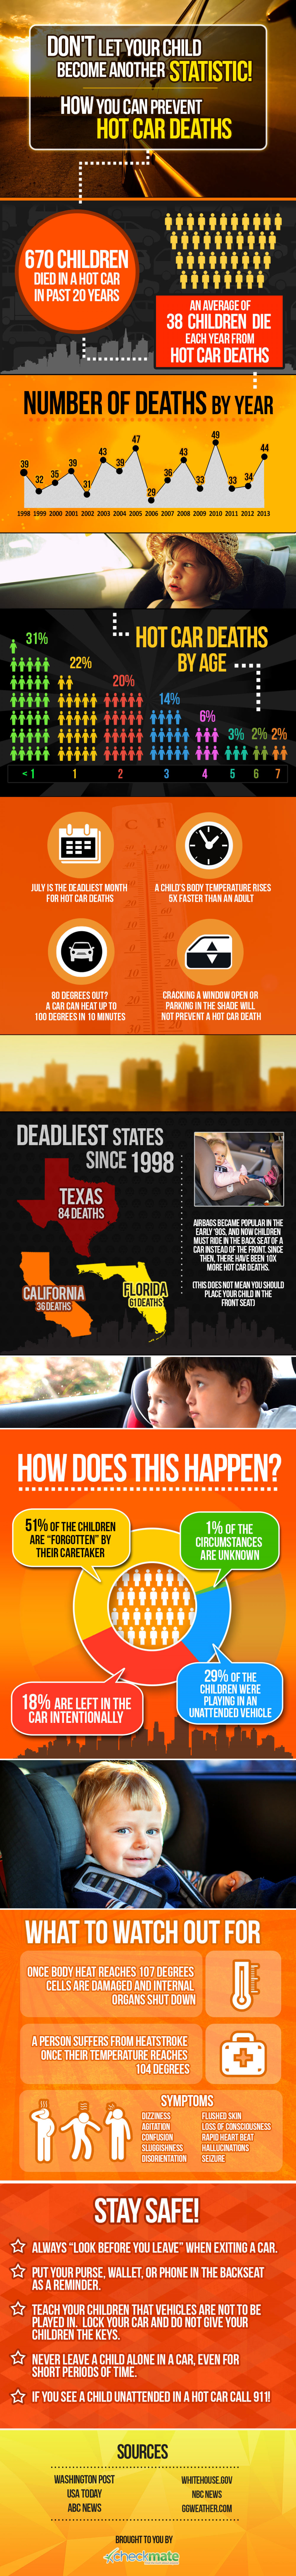 Don't Let Your Child Become Another Statistic: How YOU Can Prevent Hot Car Deaths Infographic